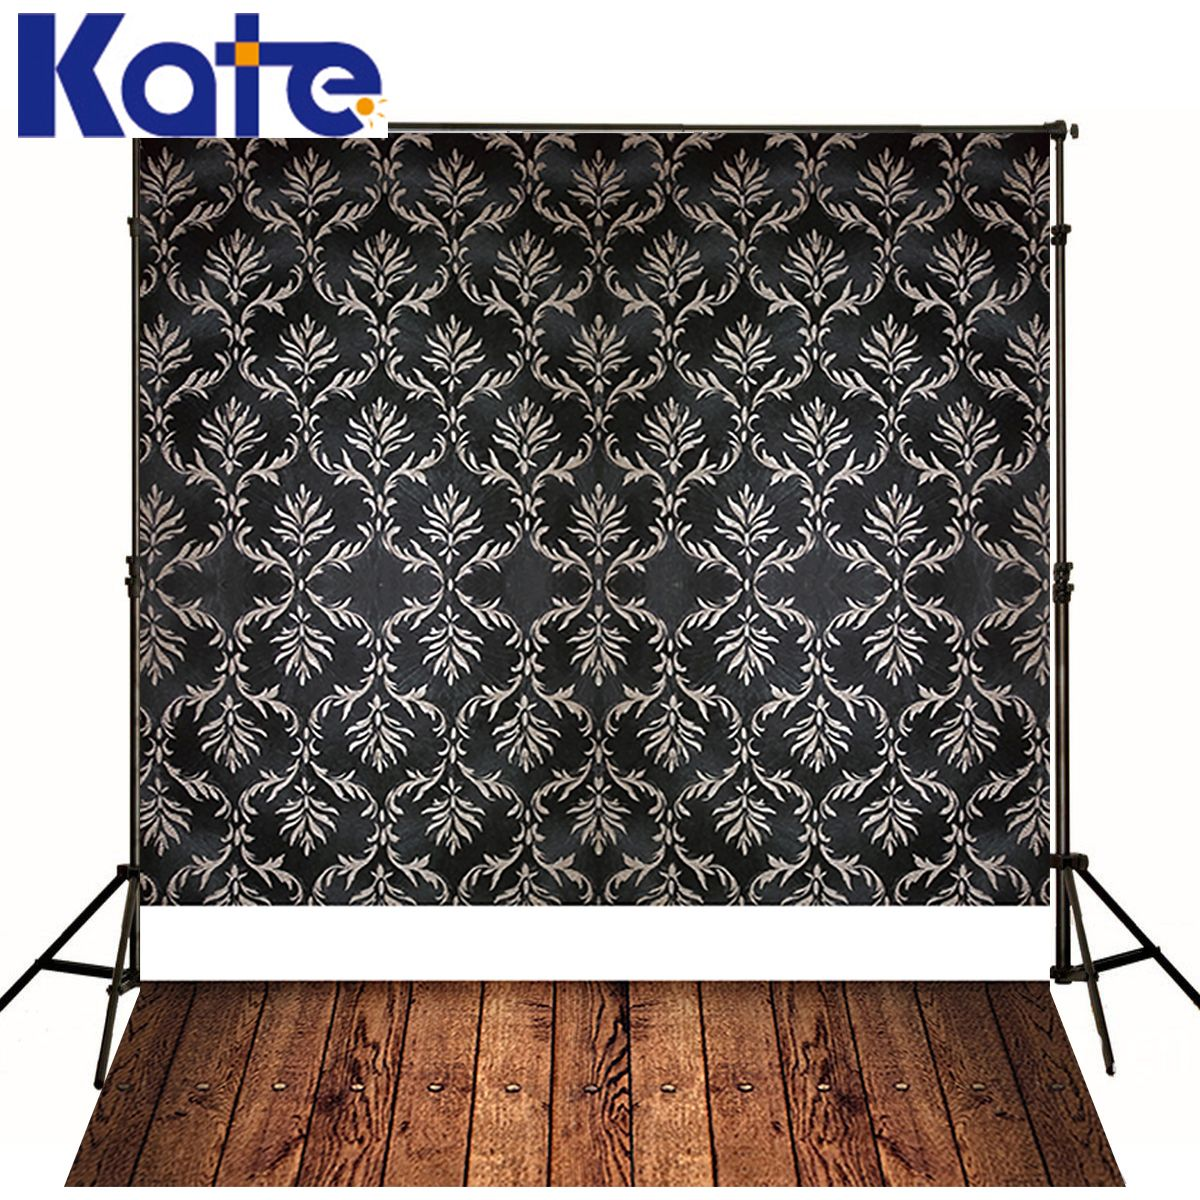 Find More Background Information about Backdrops Photography Photo Studio  Background Black With White Totem Brown Wood